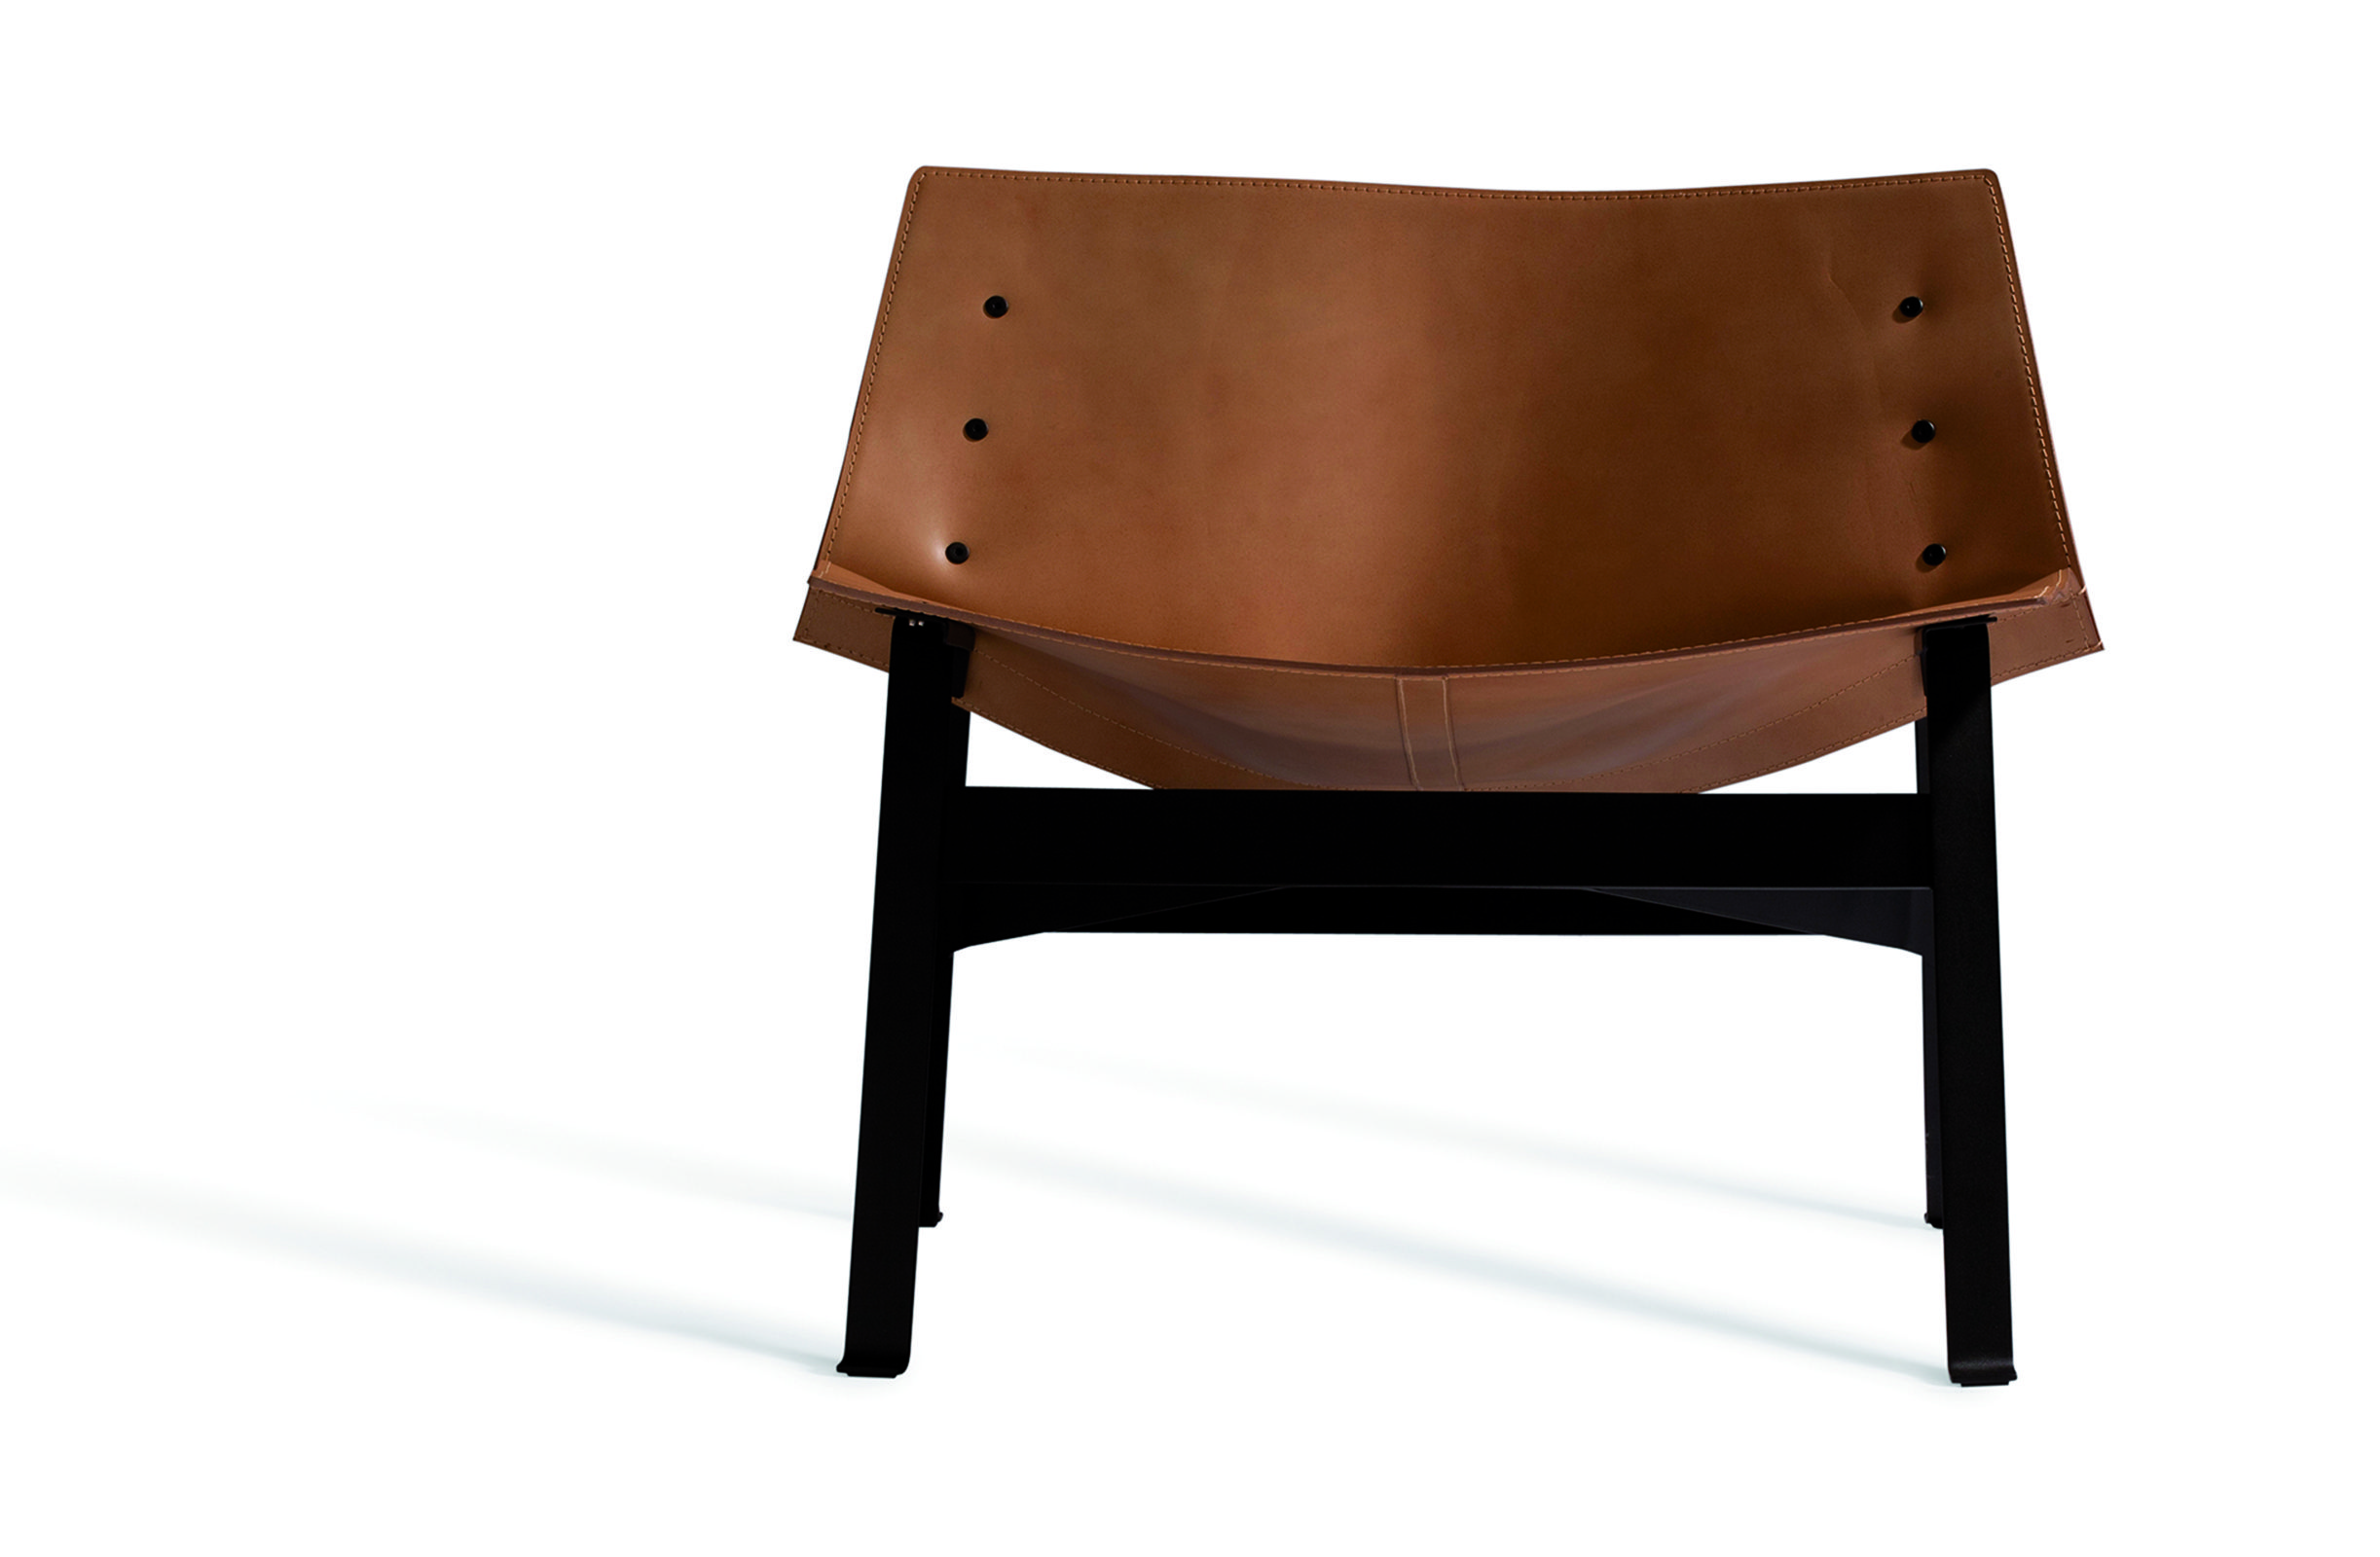 Contemporary timeless design furniture to inspire people